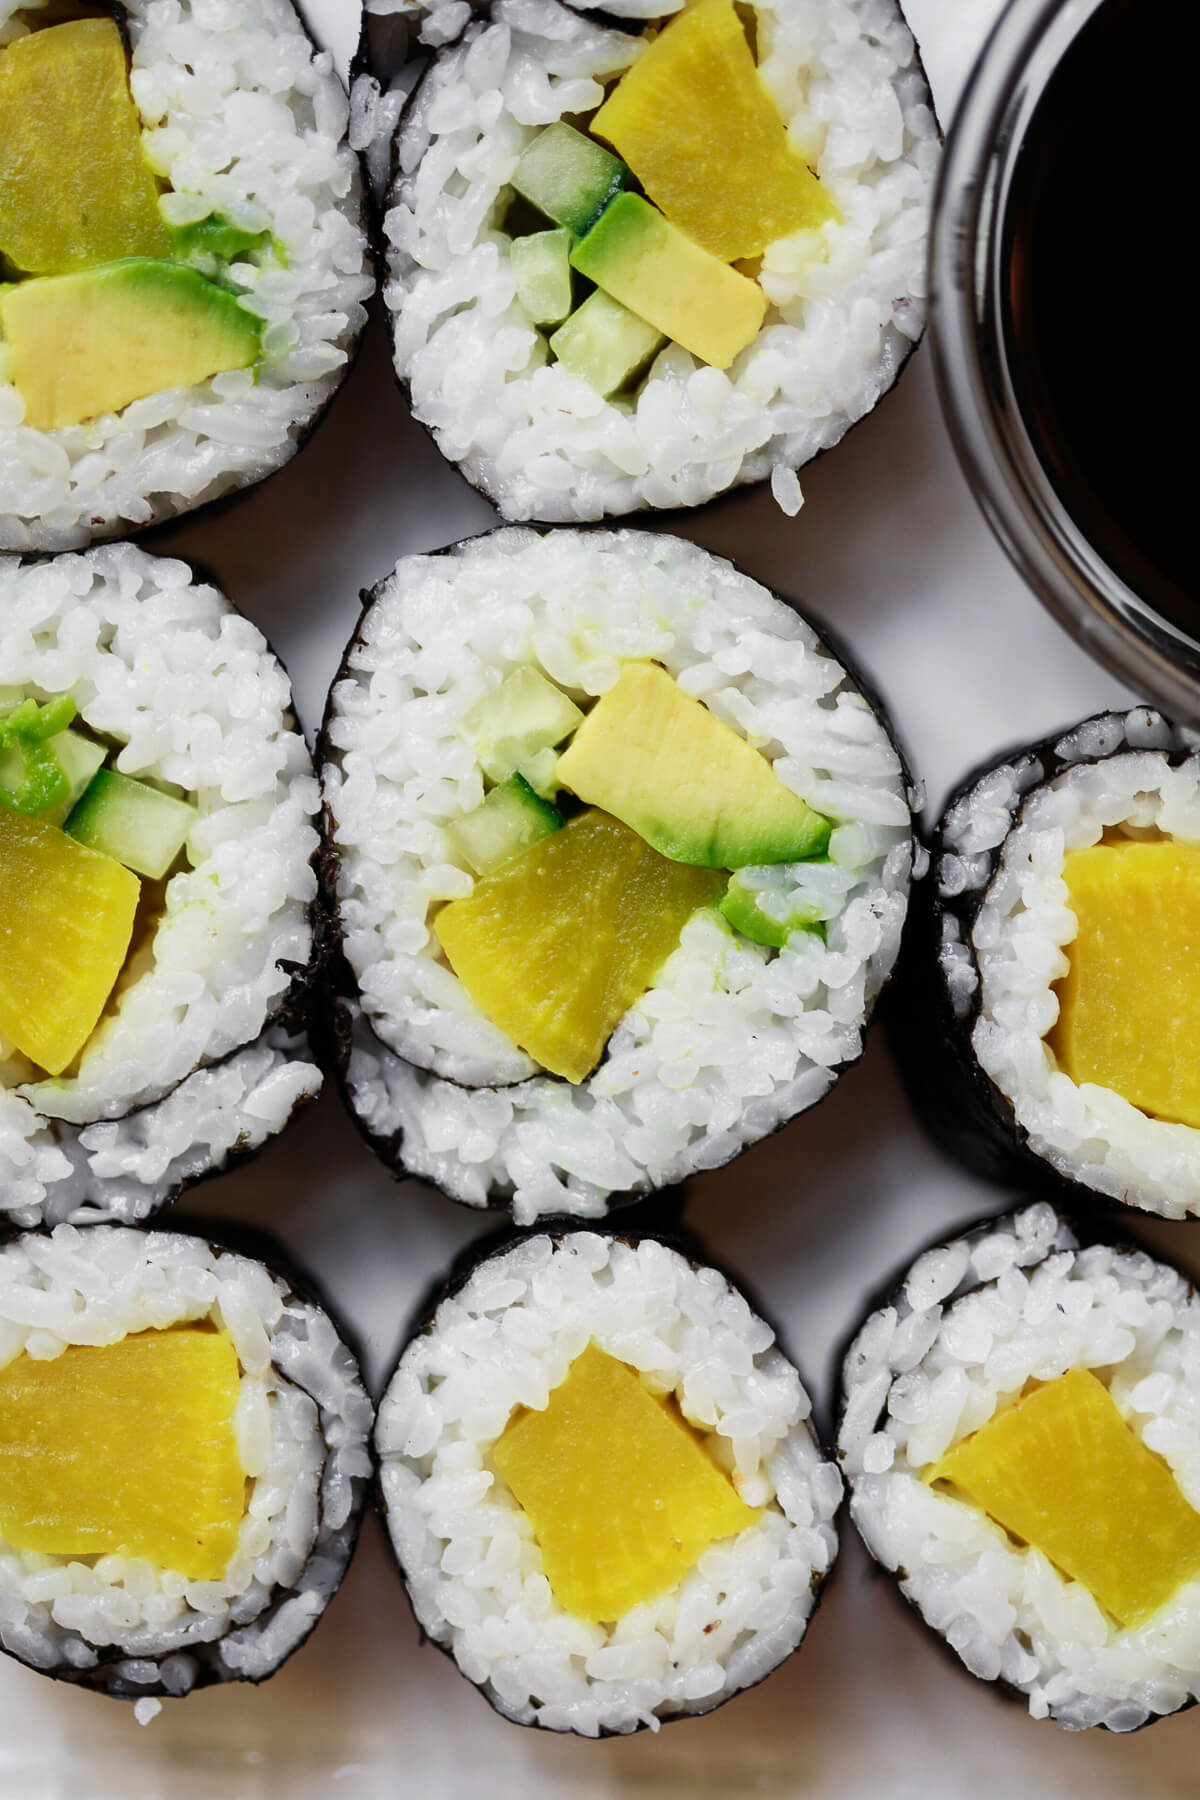 An overhead close-up photo of oshinko rolls with avocado and cucumber. A delicious veggie sushi recipe.